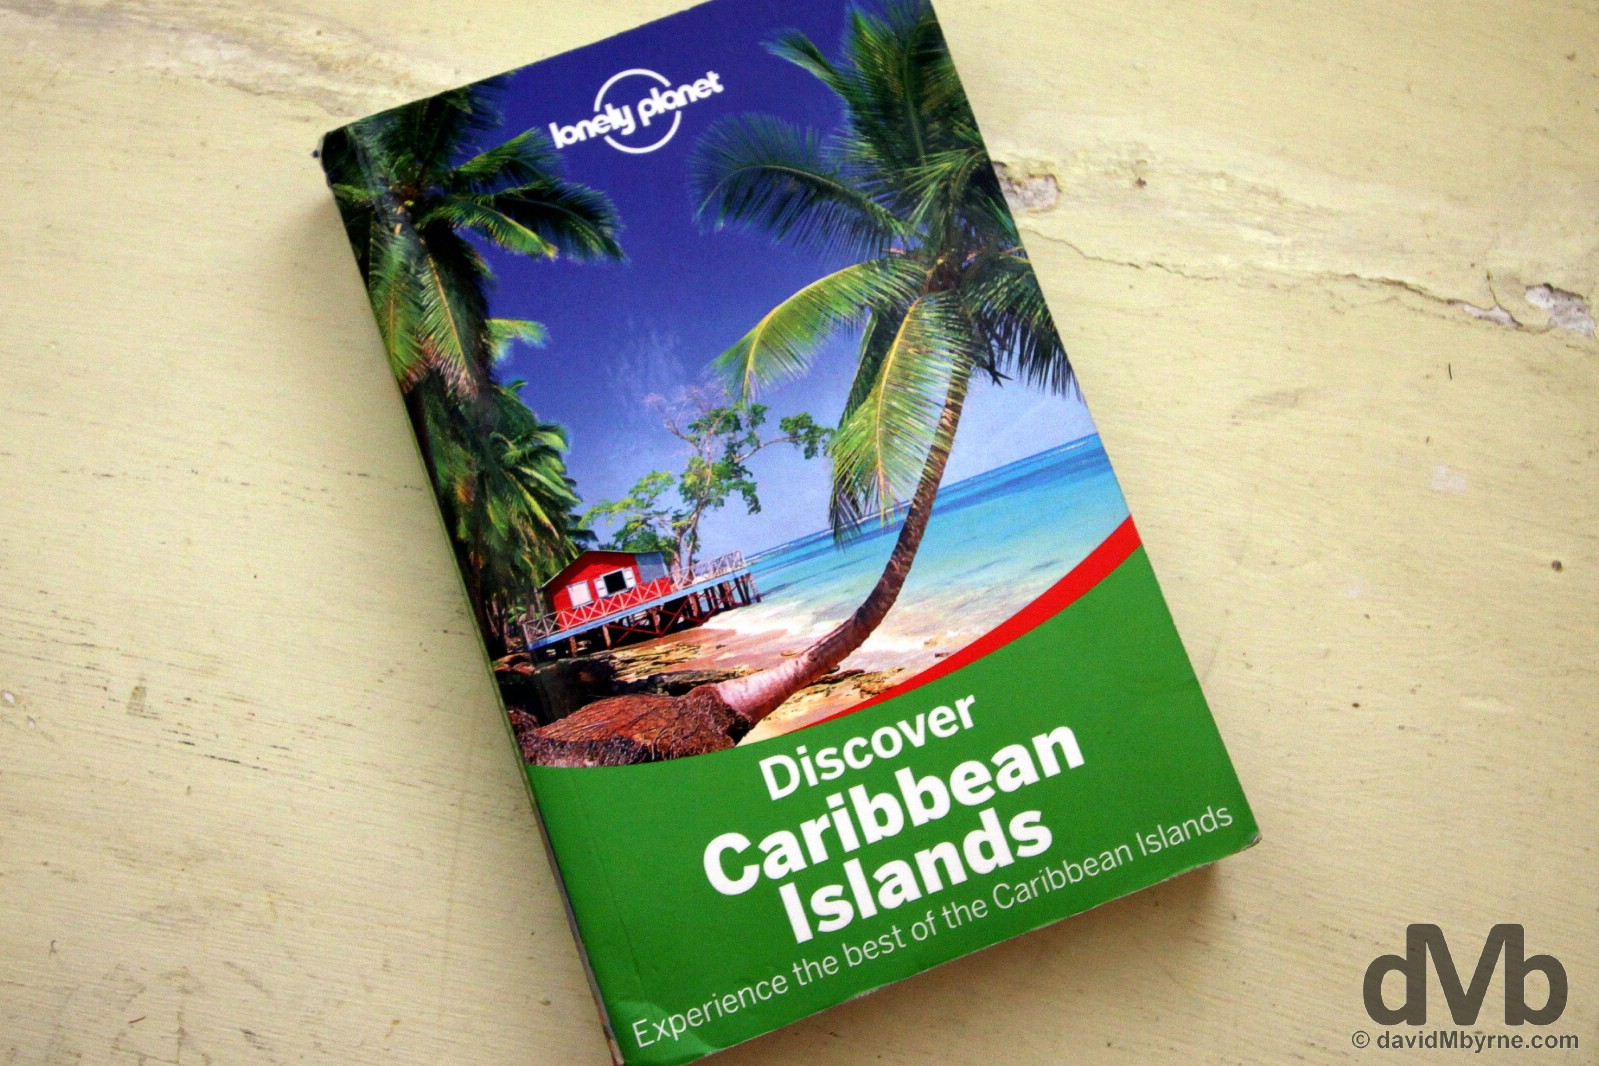 The Caribbean was great, not that this had anything to do with it. Lonely Planet's Discover Caribbean Islands. The worst Lonely Planet publication I've yet used. It wasn't long after I started my jaunt through the region that this was resigned to the bottom of my backpack, where it stayed until it reappeared for this picture. I could have done without its weight & certainly could have done without it's next-to-useless content.